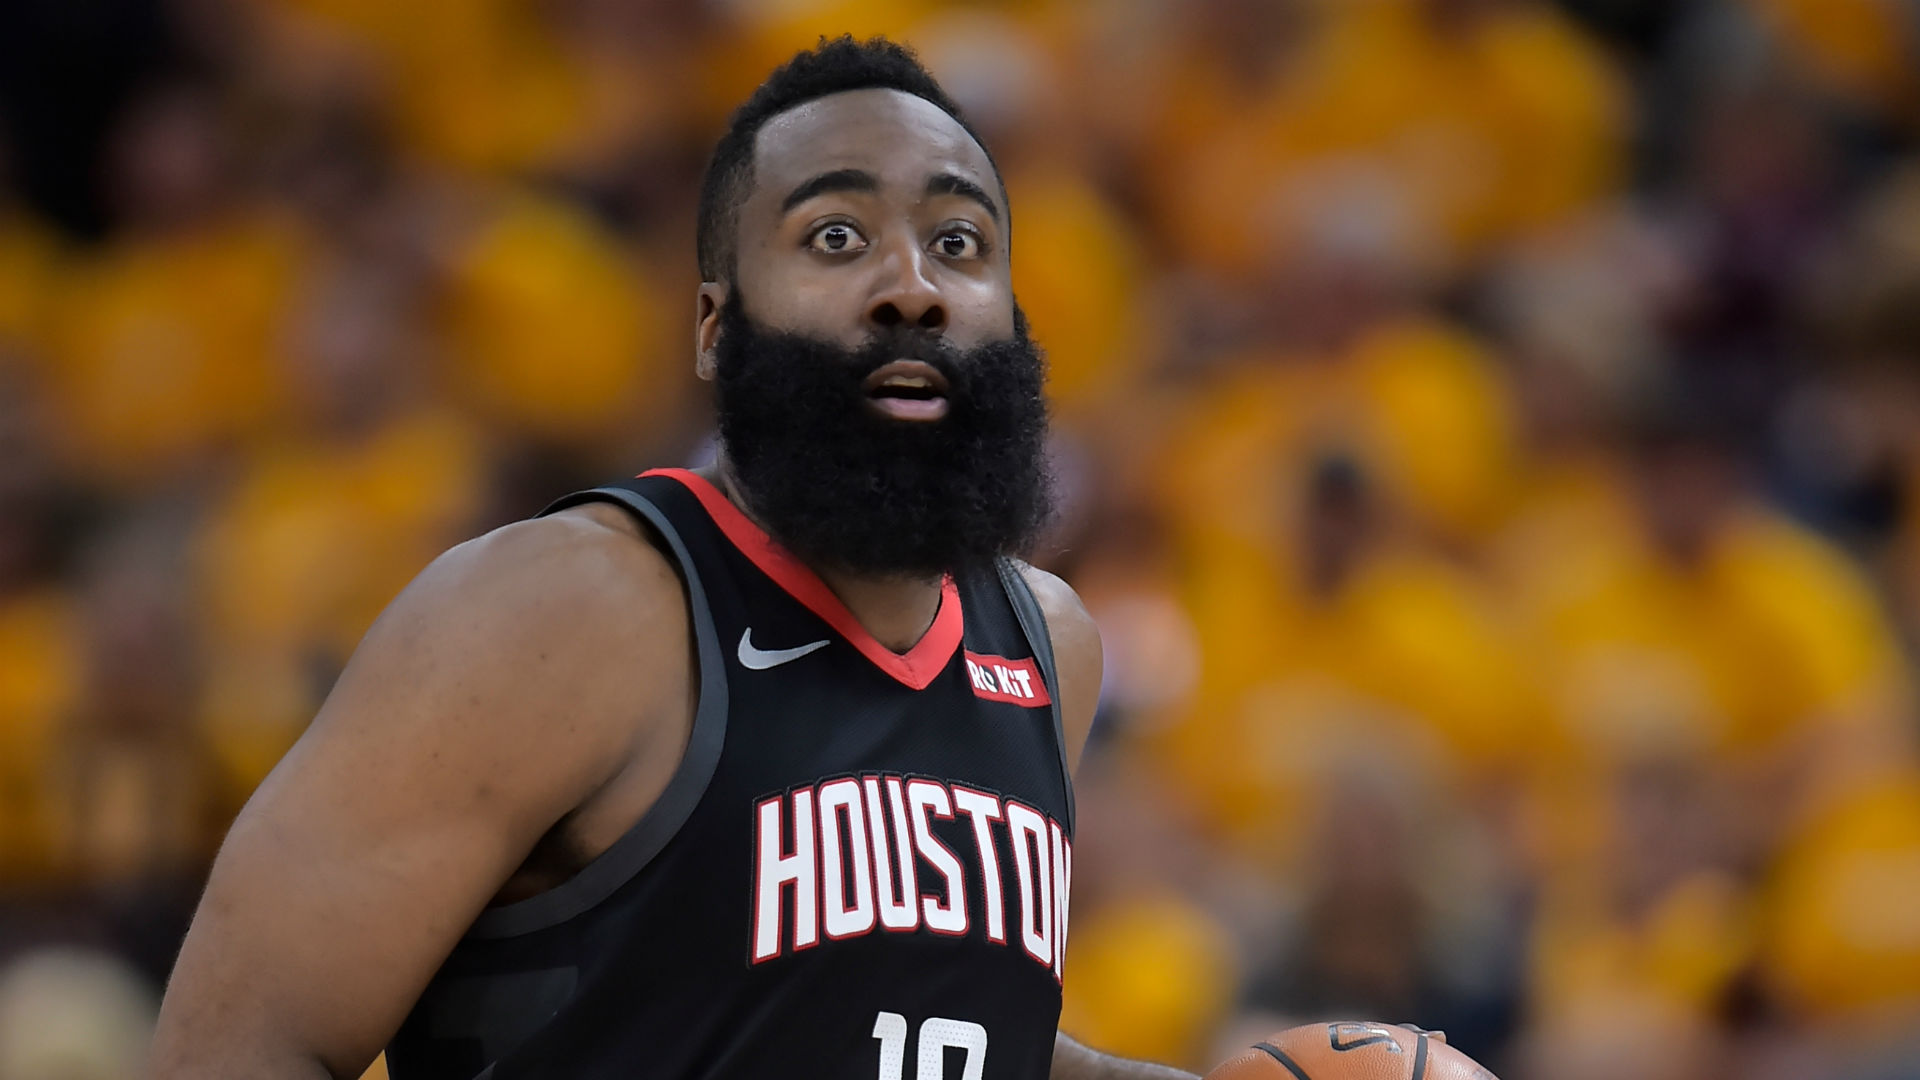 James Harden sued for alleged damages to $30M mansion after throwing party, report says